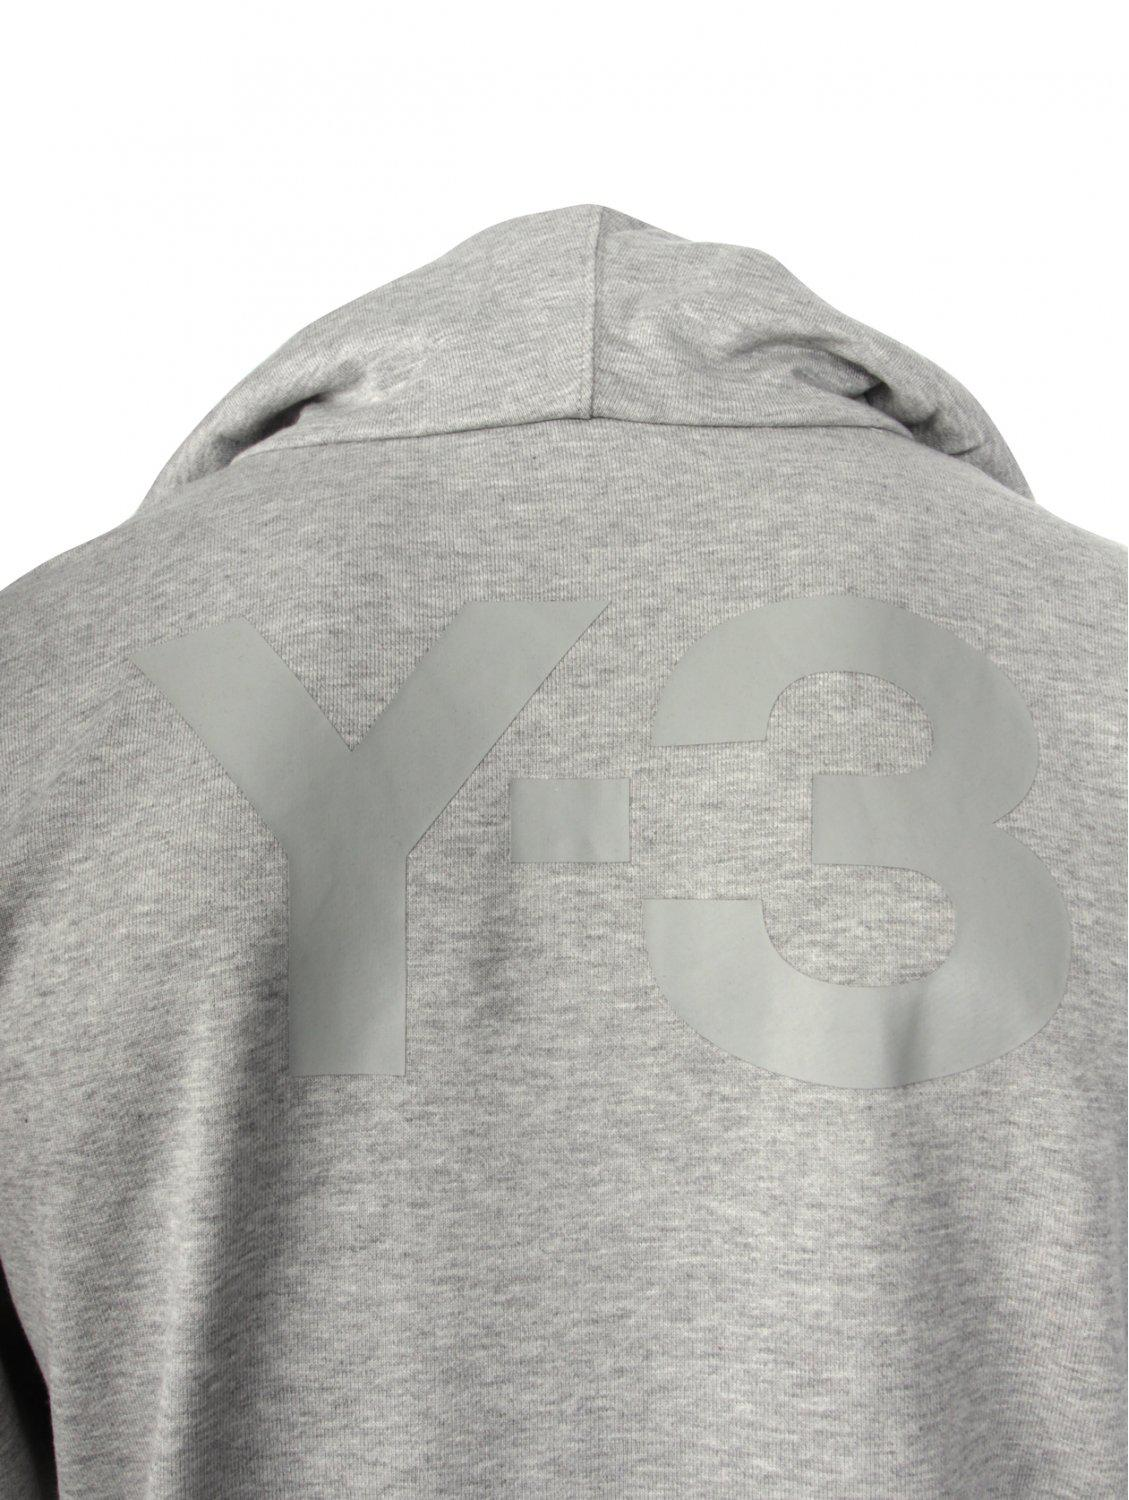 Y-3 Cotton Classic Hooded Track Jacket Grey in Grey for Men